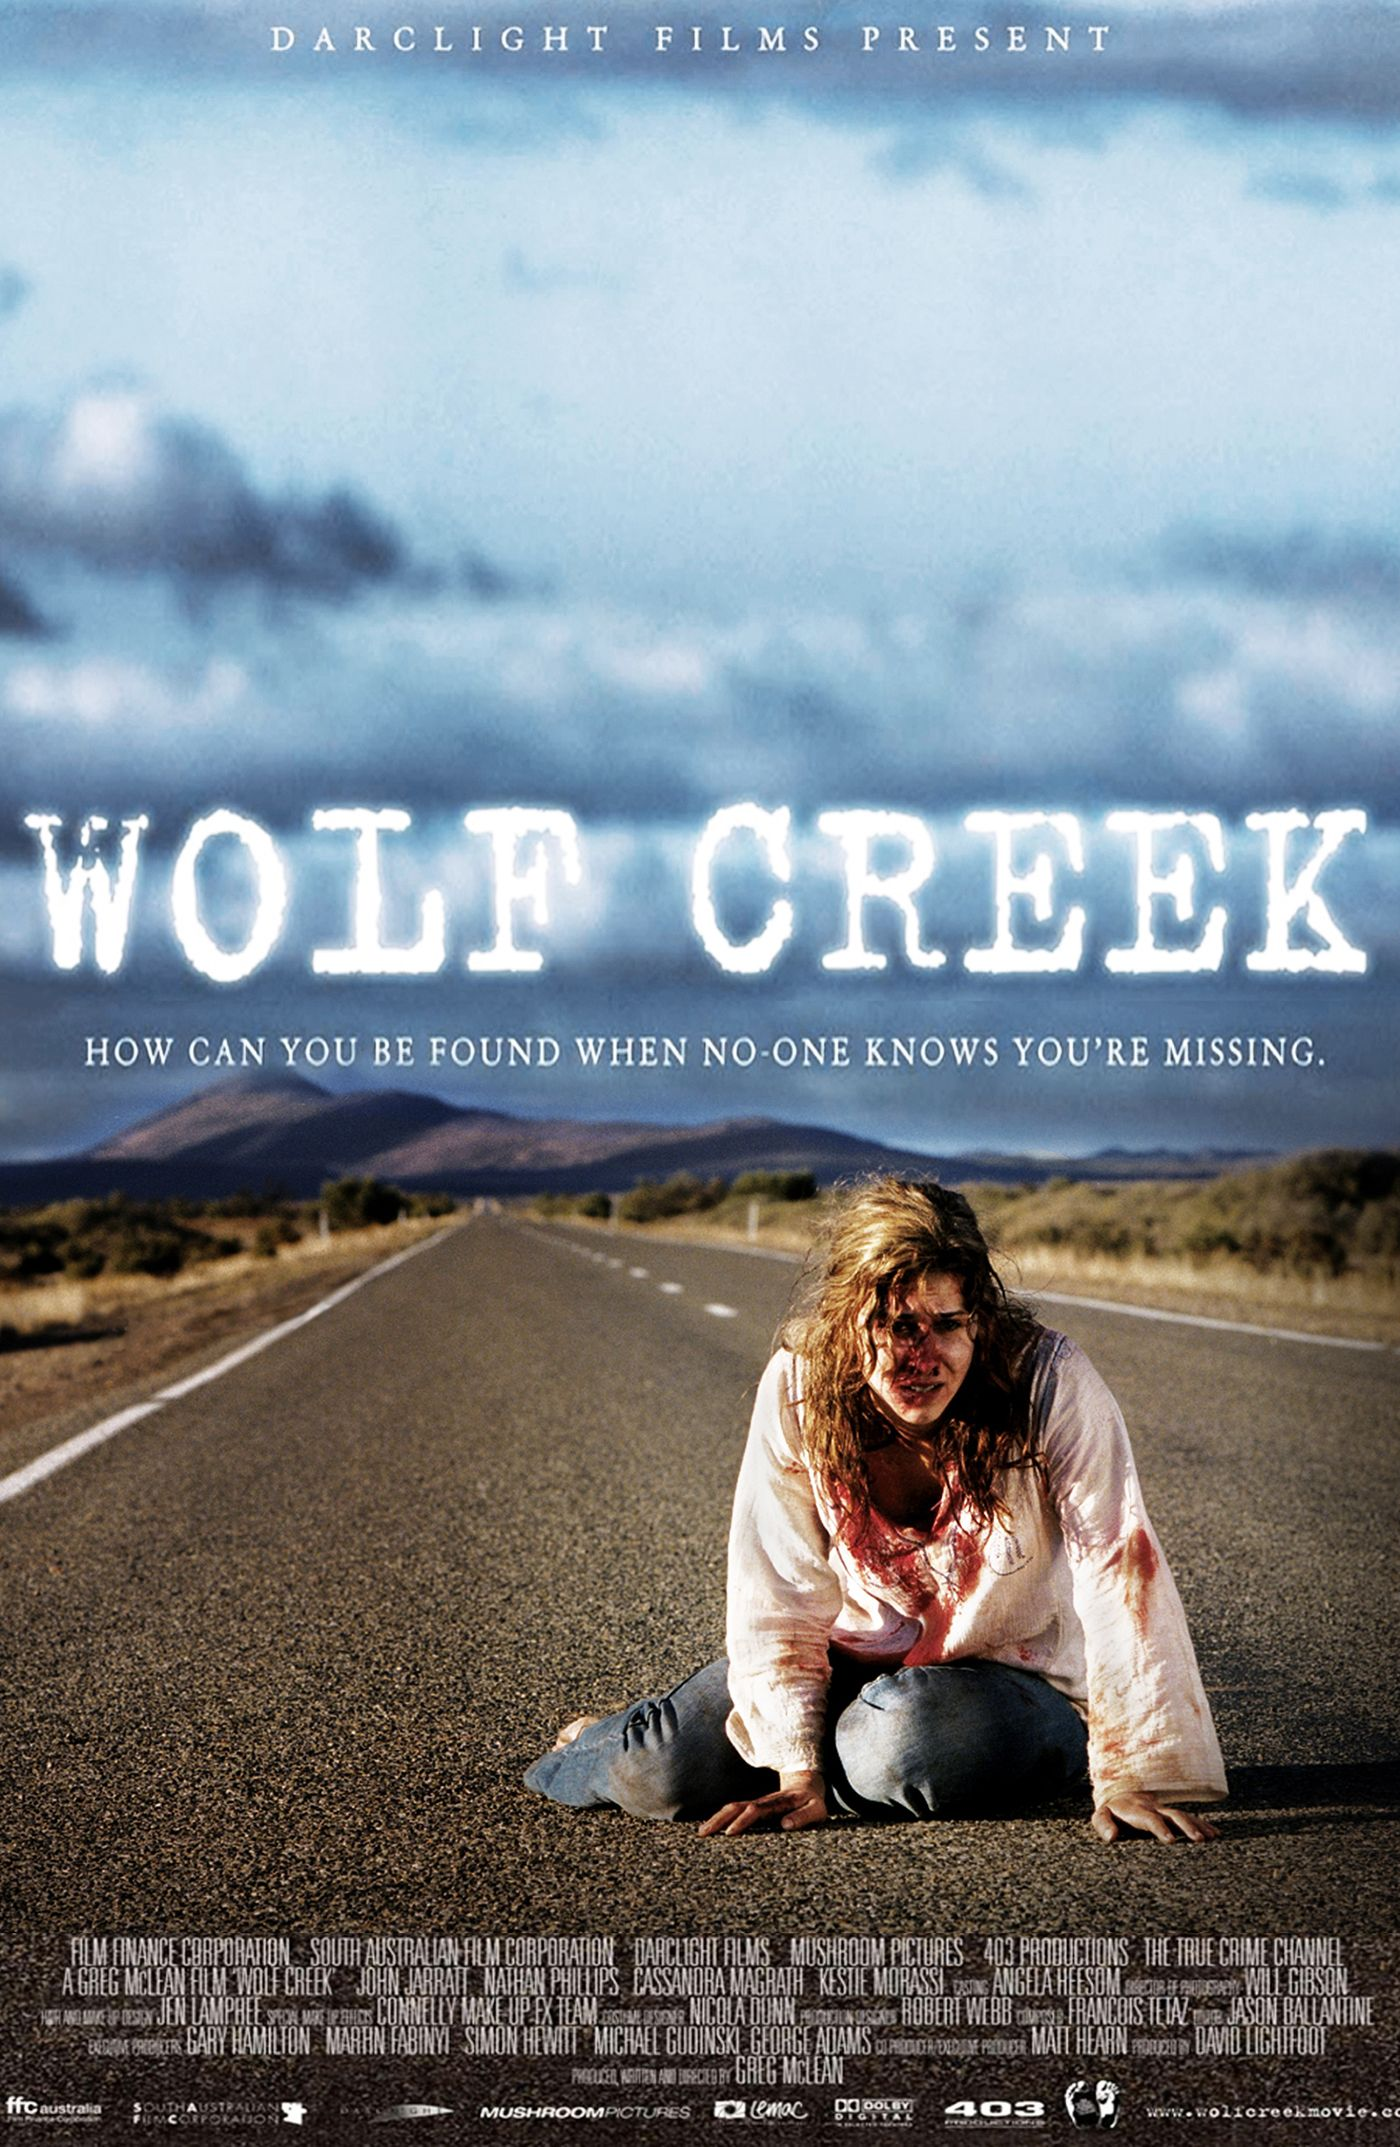 Pin by Susan Nienow on awesome movies (With images) Wolf